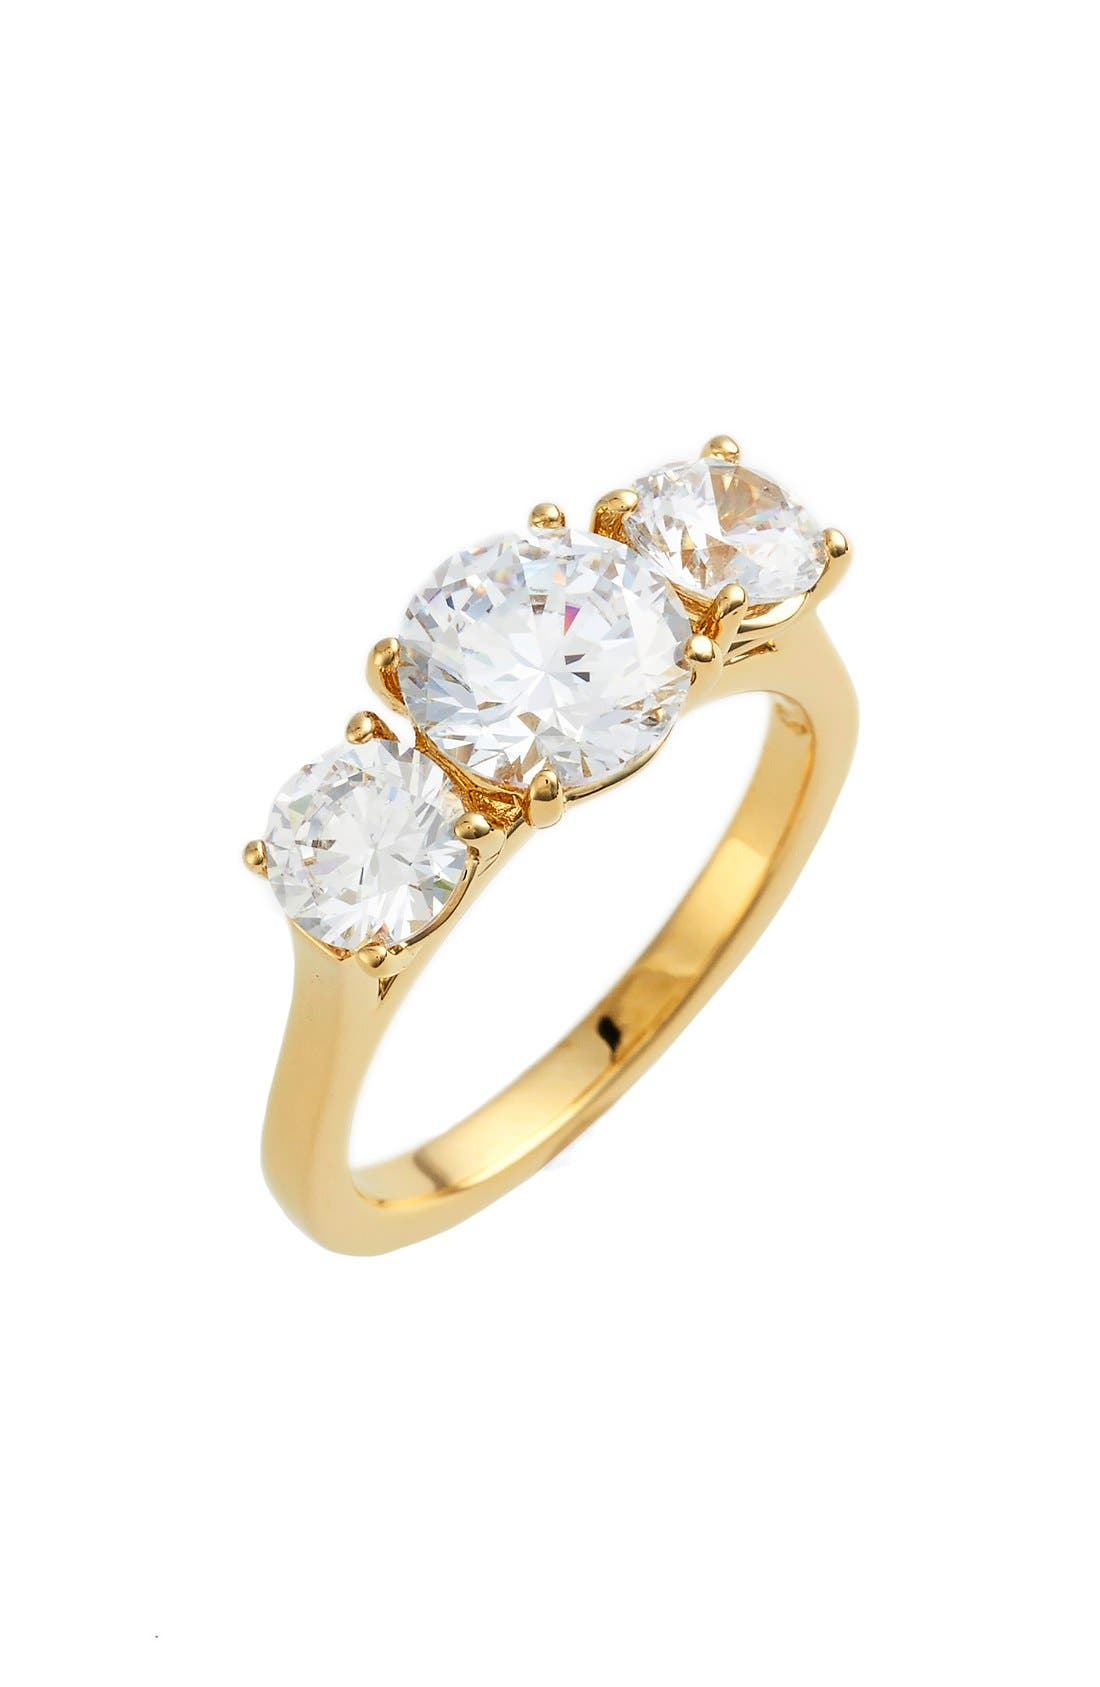 3-Stone Cubic Zirconia Ring,                         Main,                         color, Gold